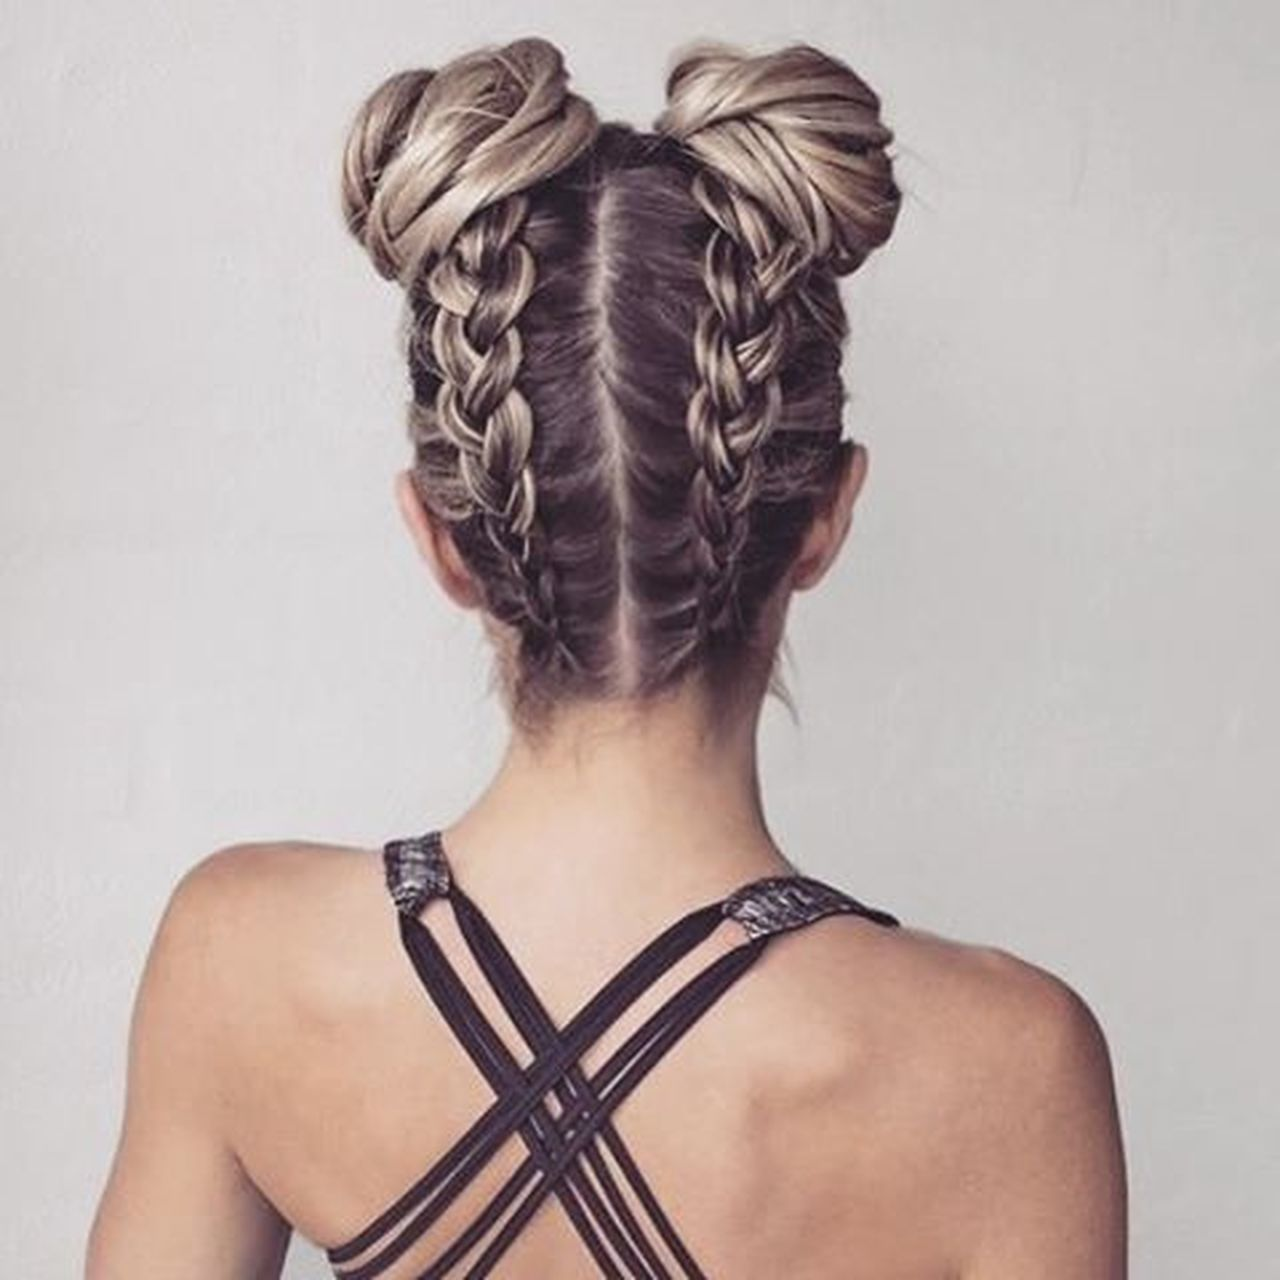 One Woman Only Hairstyle Human Hair Braided Hair Rear View One Person Adults Only Only Women Hair Care Beauty Females Fashion Blond Hair Hair Bun One Young Woman Only Studio Shot Adult Women Headshot People Business Finance And Industry First Eyeem Photo Long Hair Place Of Worship City